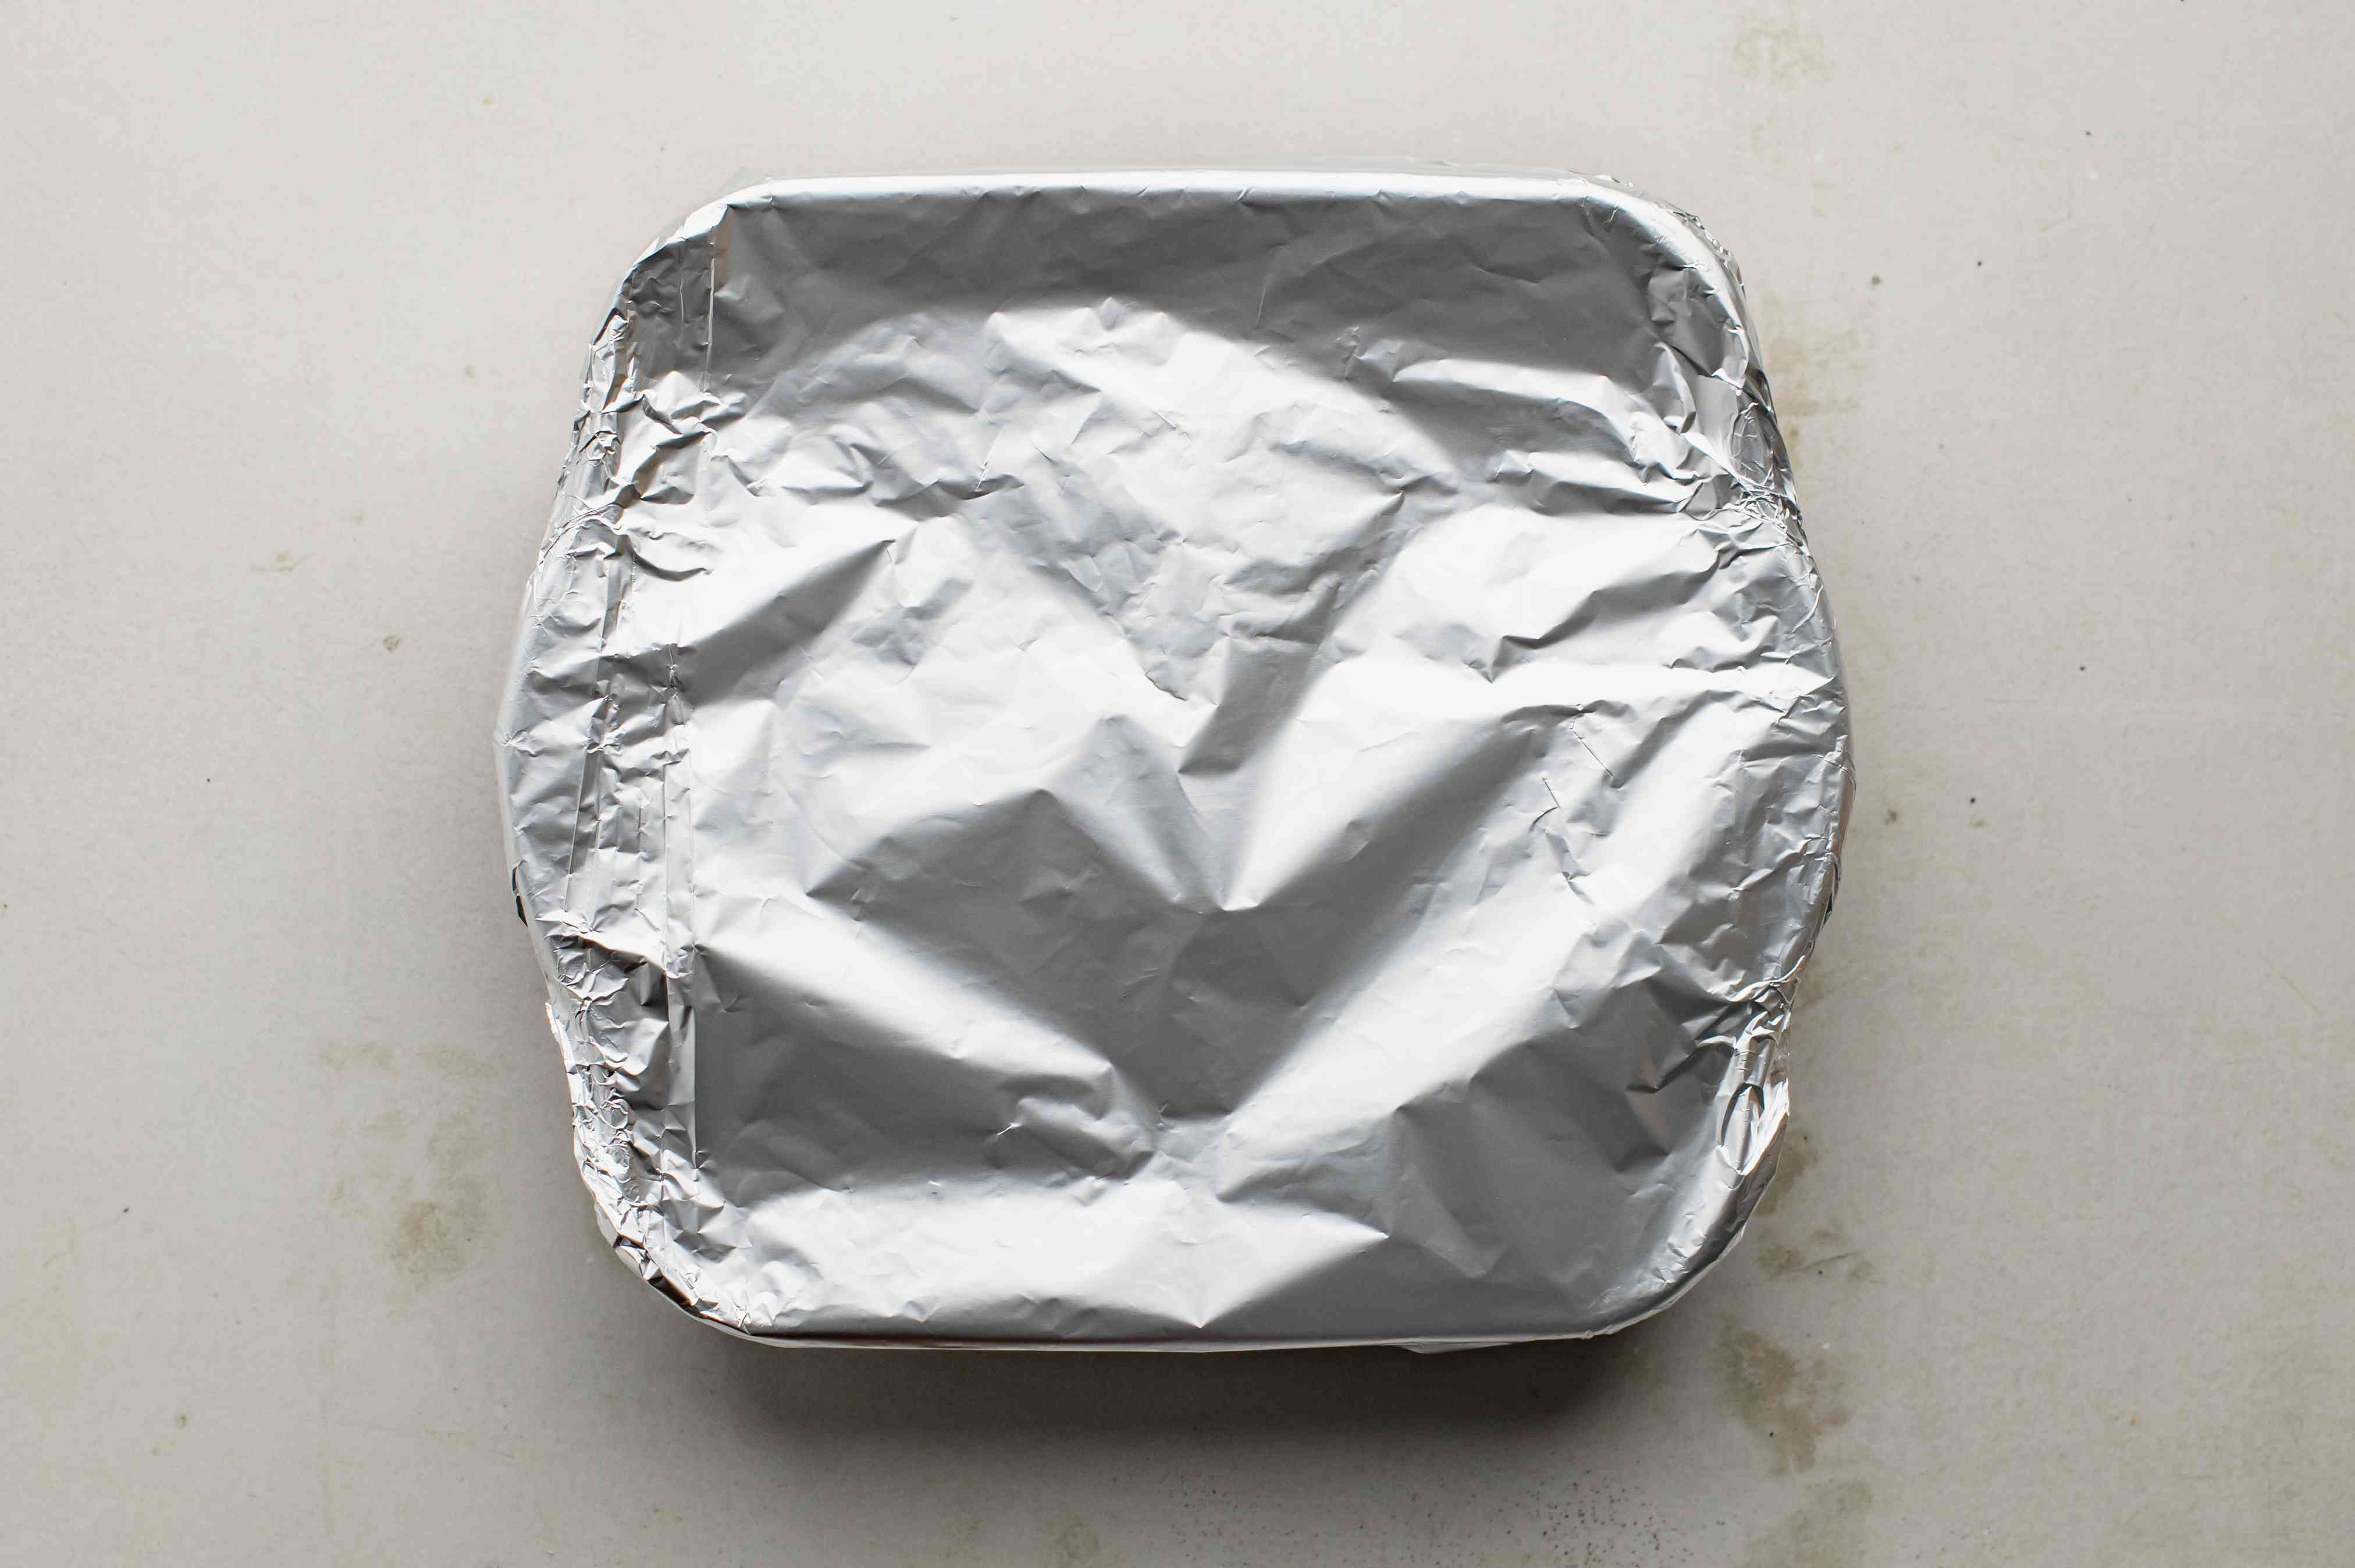 Cover tightly with foil